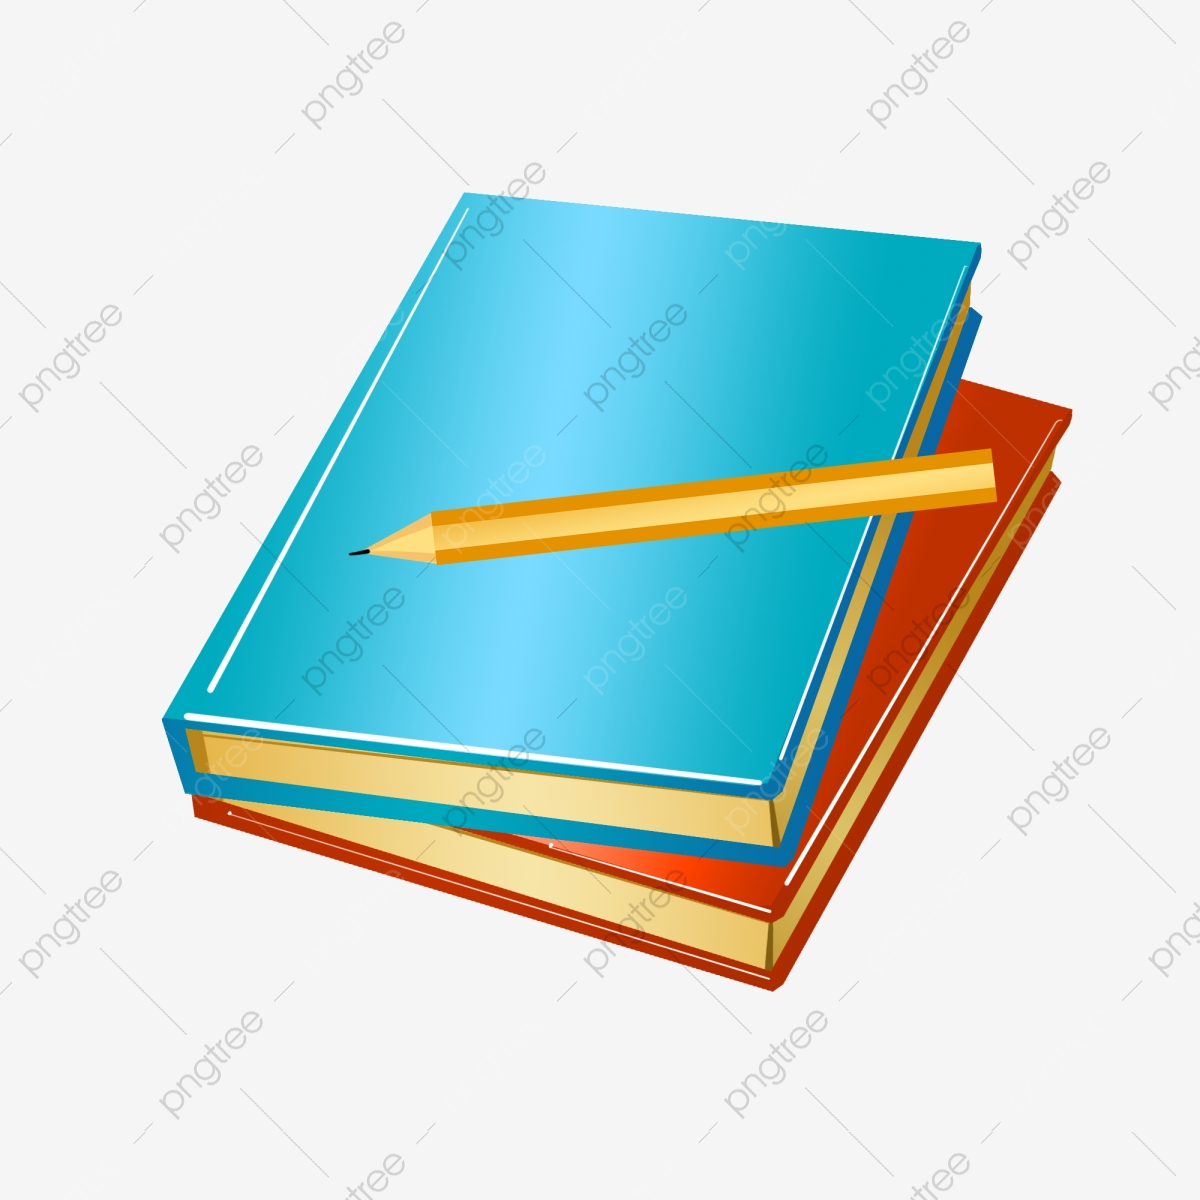 Blue Book Blue Notebook Yellow Coin Stationery Notebook